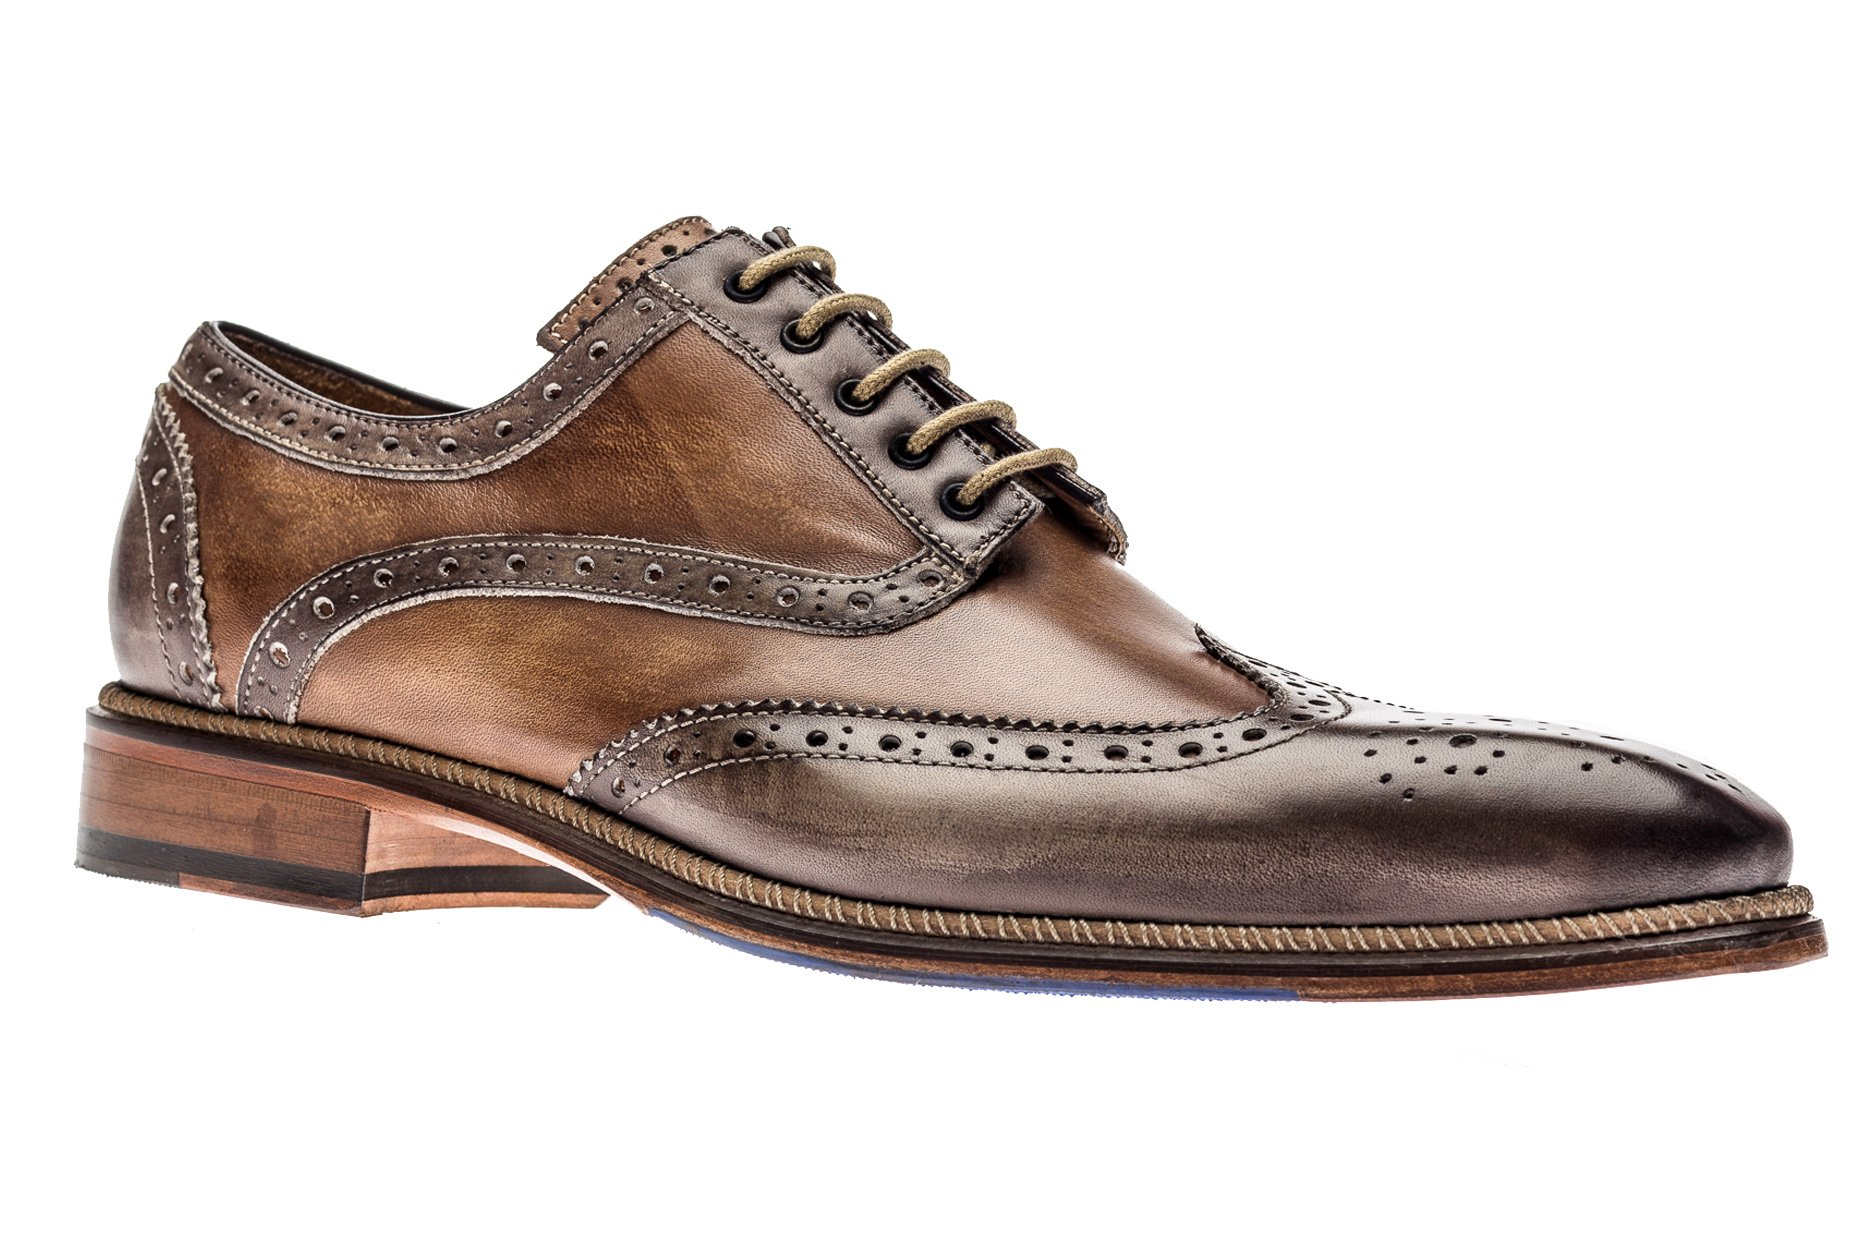 Jose Real Shoes Veloce Collection | Cafe | Mens Oxford Brown Genuine Real Italian Leather Dress Shoe | Size EU 45